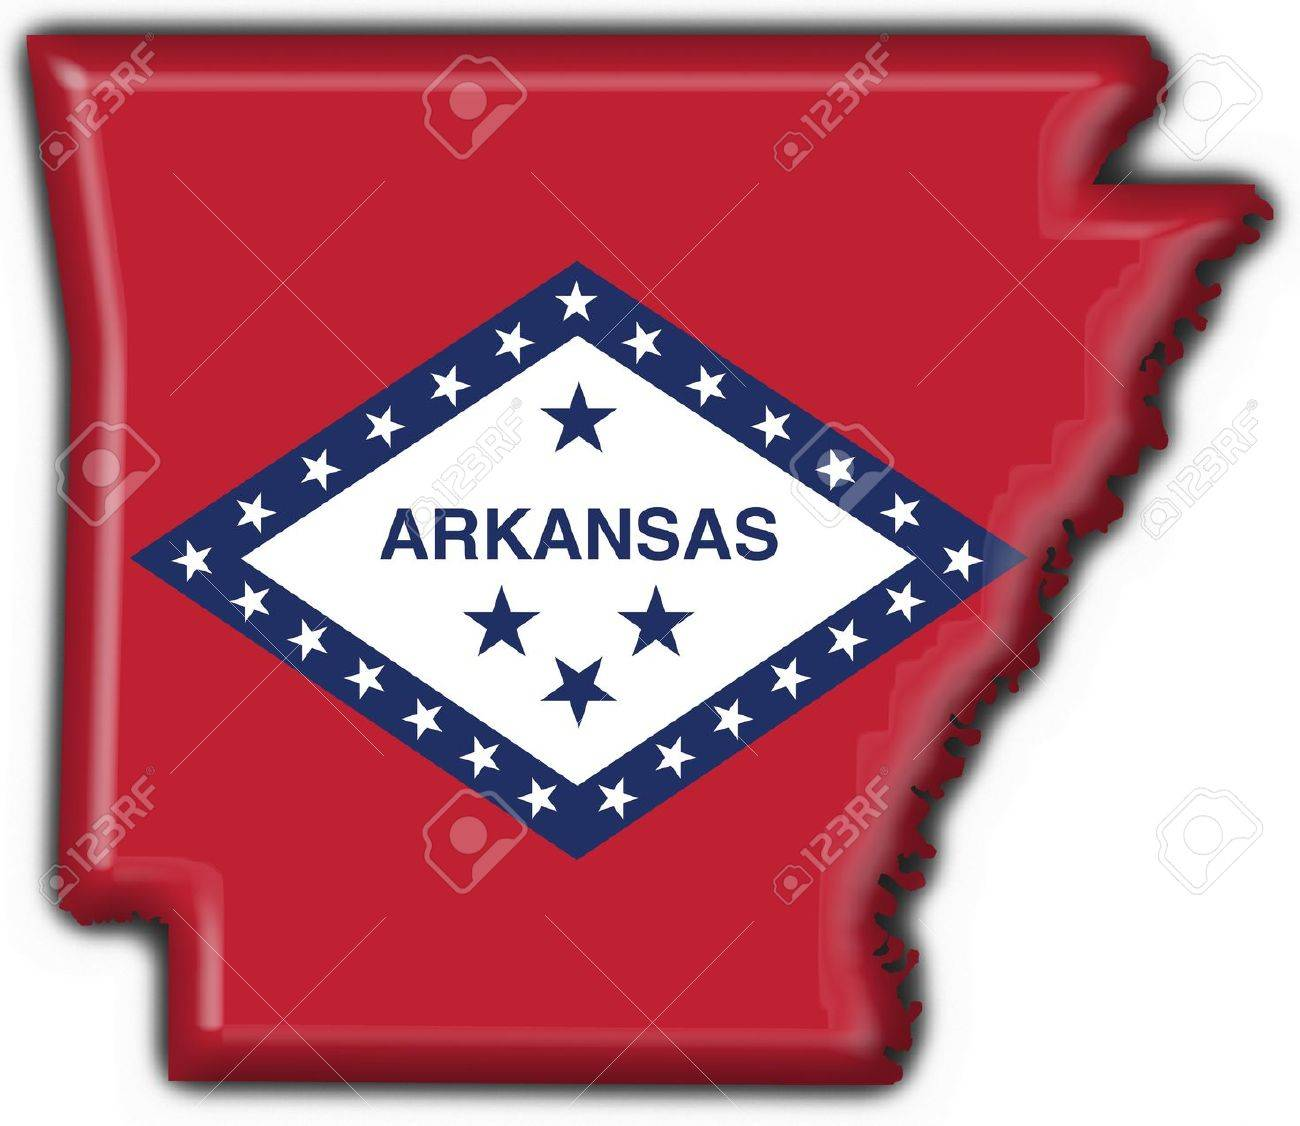 Us States Arkansas Usa State Button Flag Map Shape 3d Made Stock